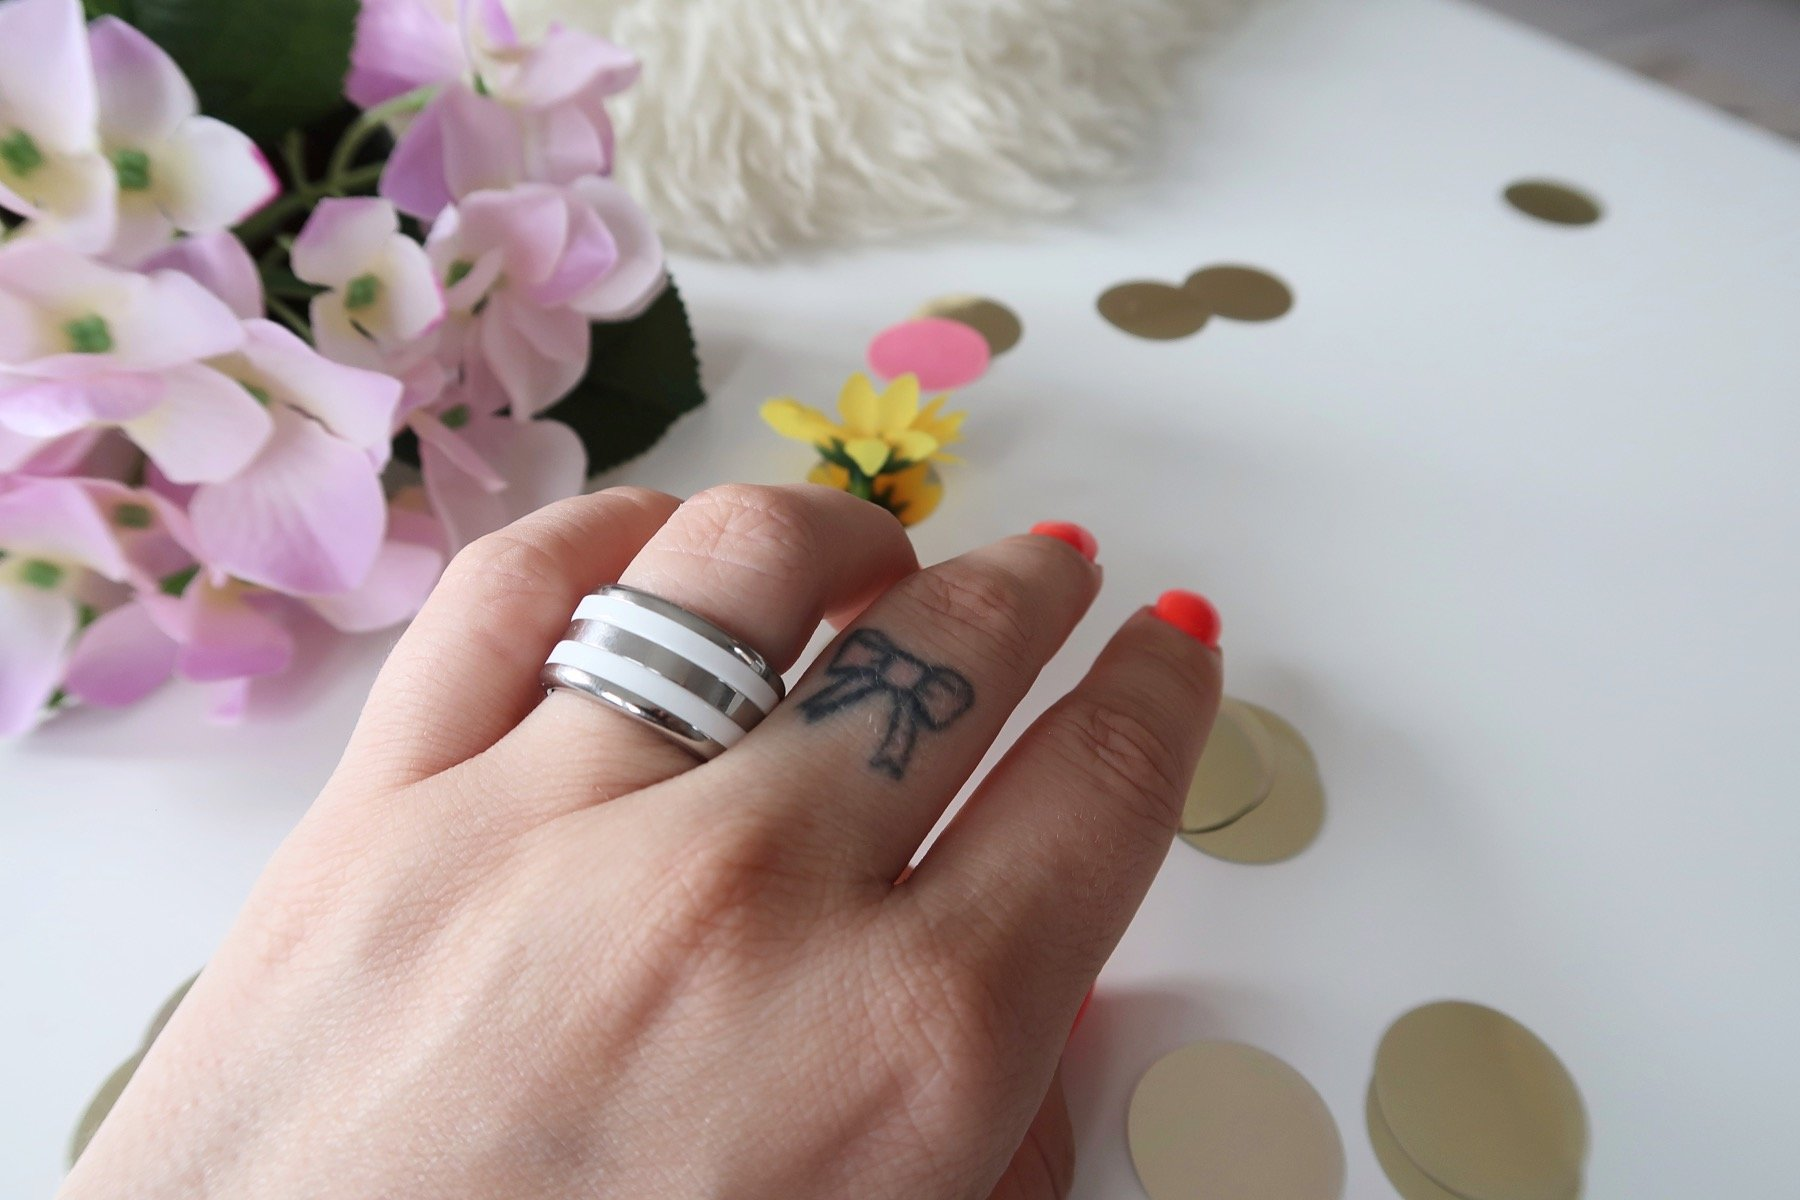 jenna minnie jennaminnie fashion blog yourmood mood moodcollection ring